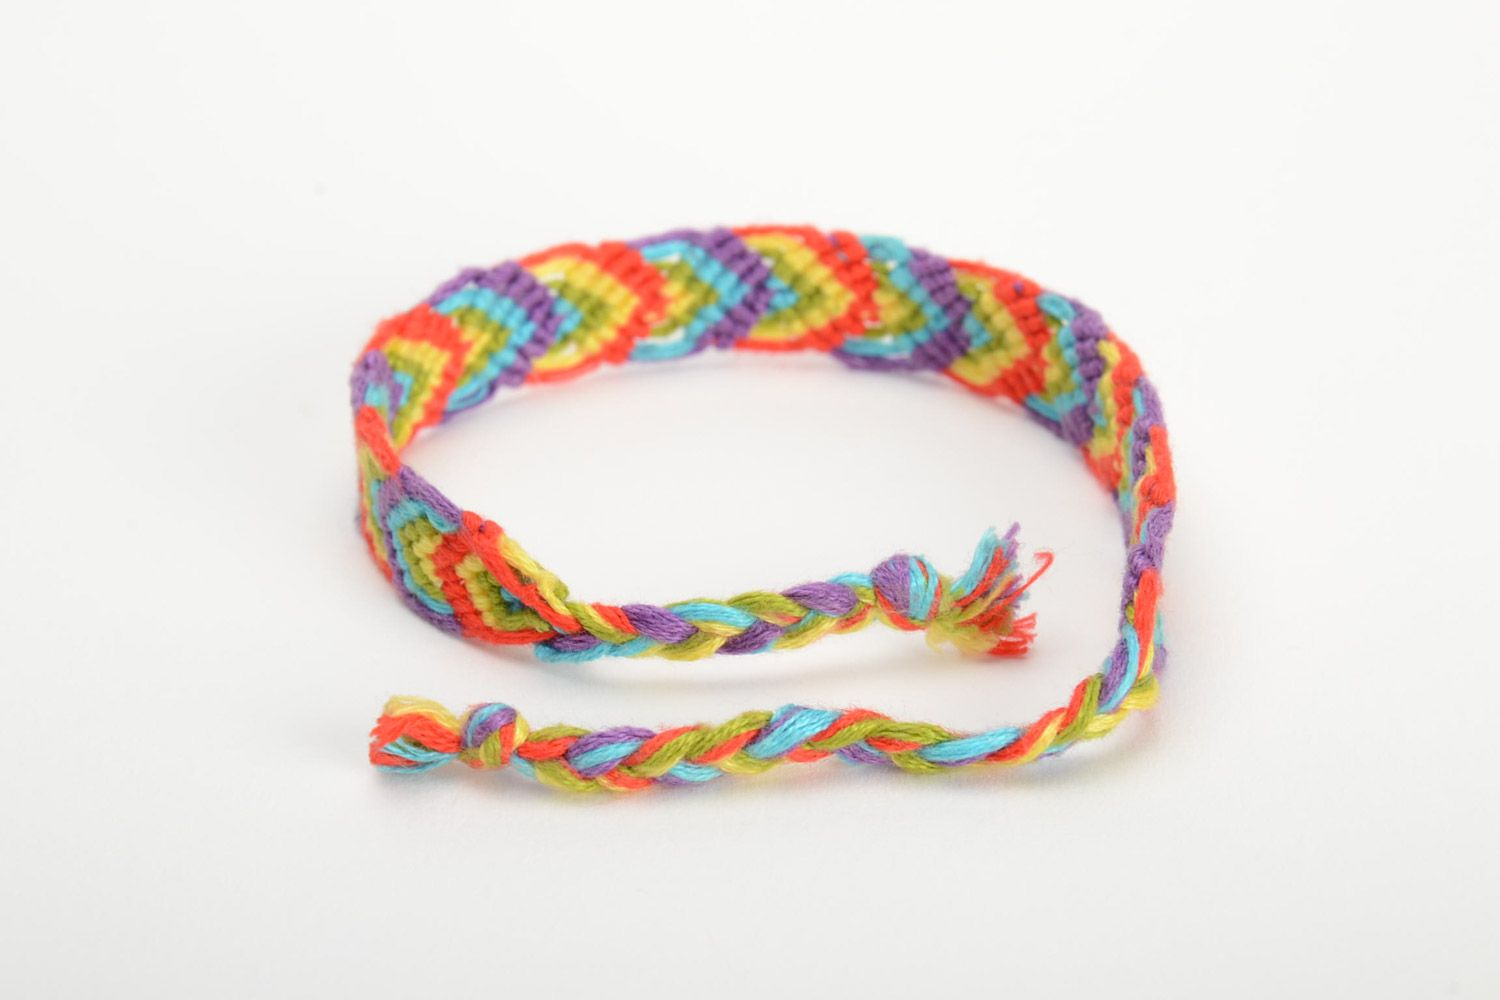 embroidery thread diy friendship complicated bracelet crazy the dsc